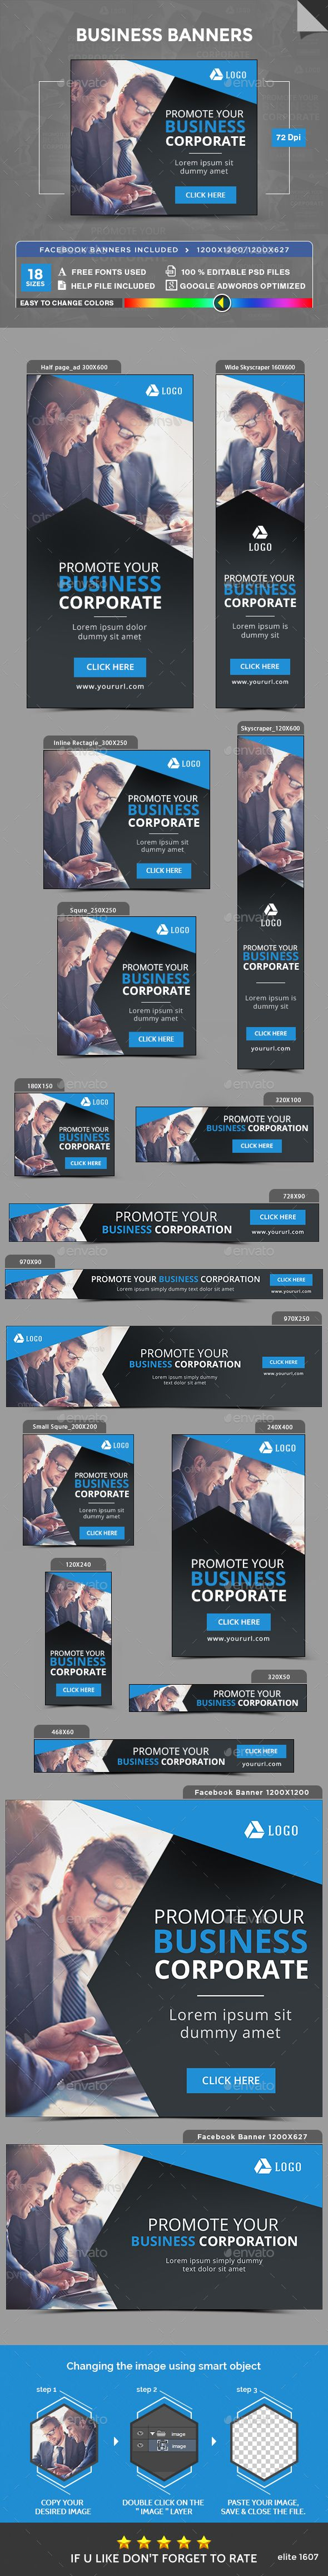 Business Banners | Banners, Template and Banner template